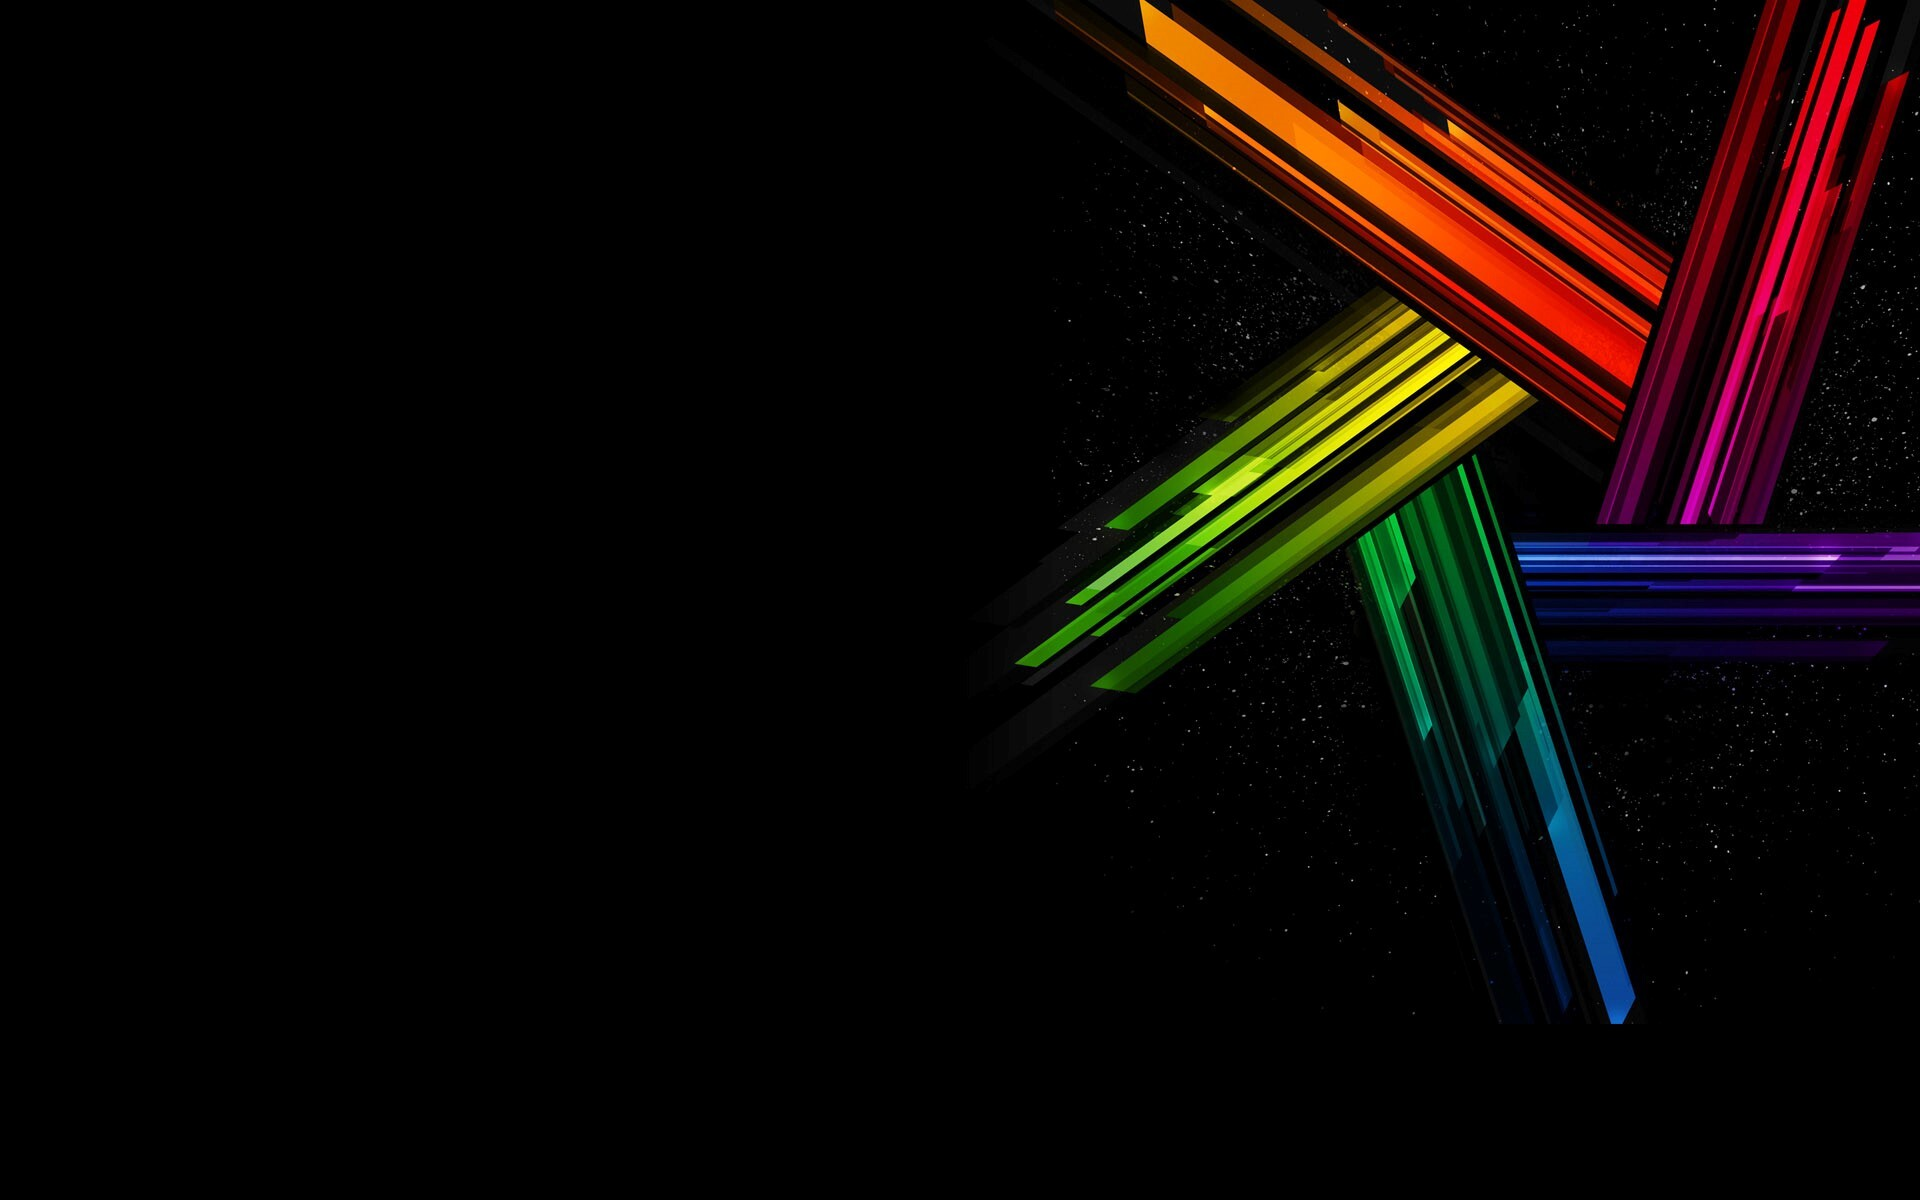 Color Abstract Background Hd Wallpapers